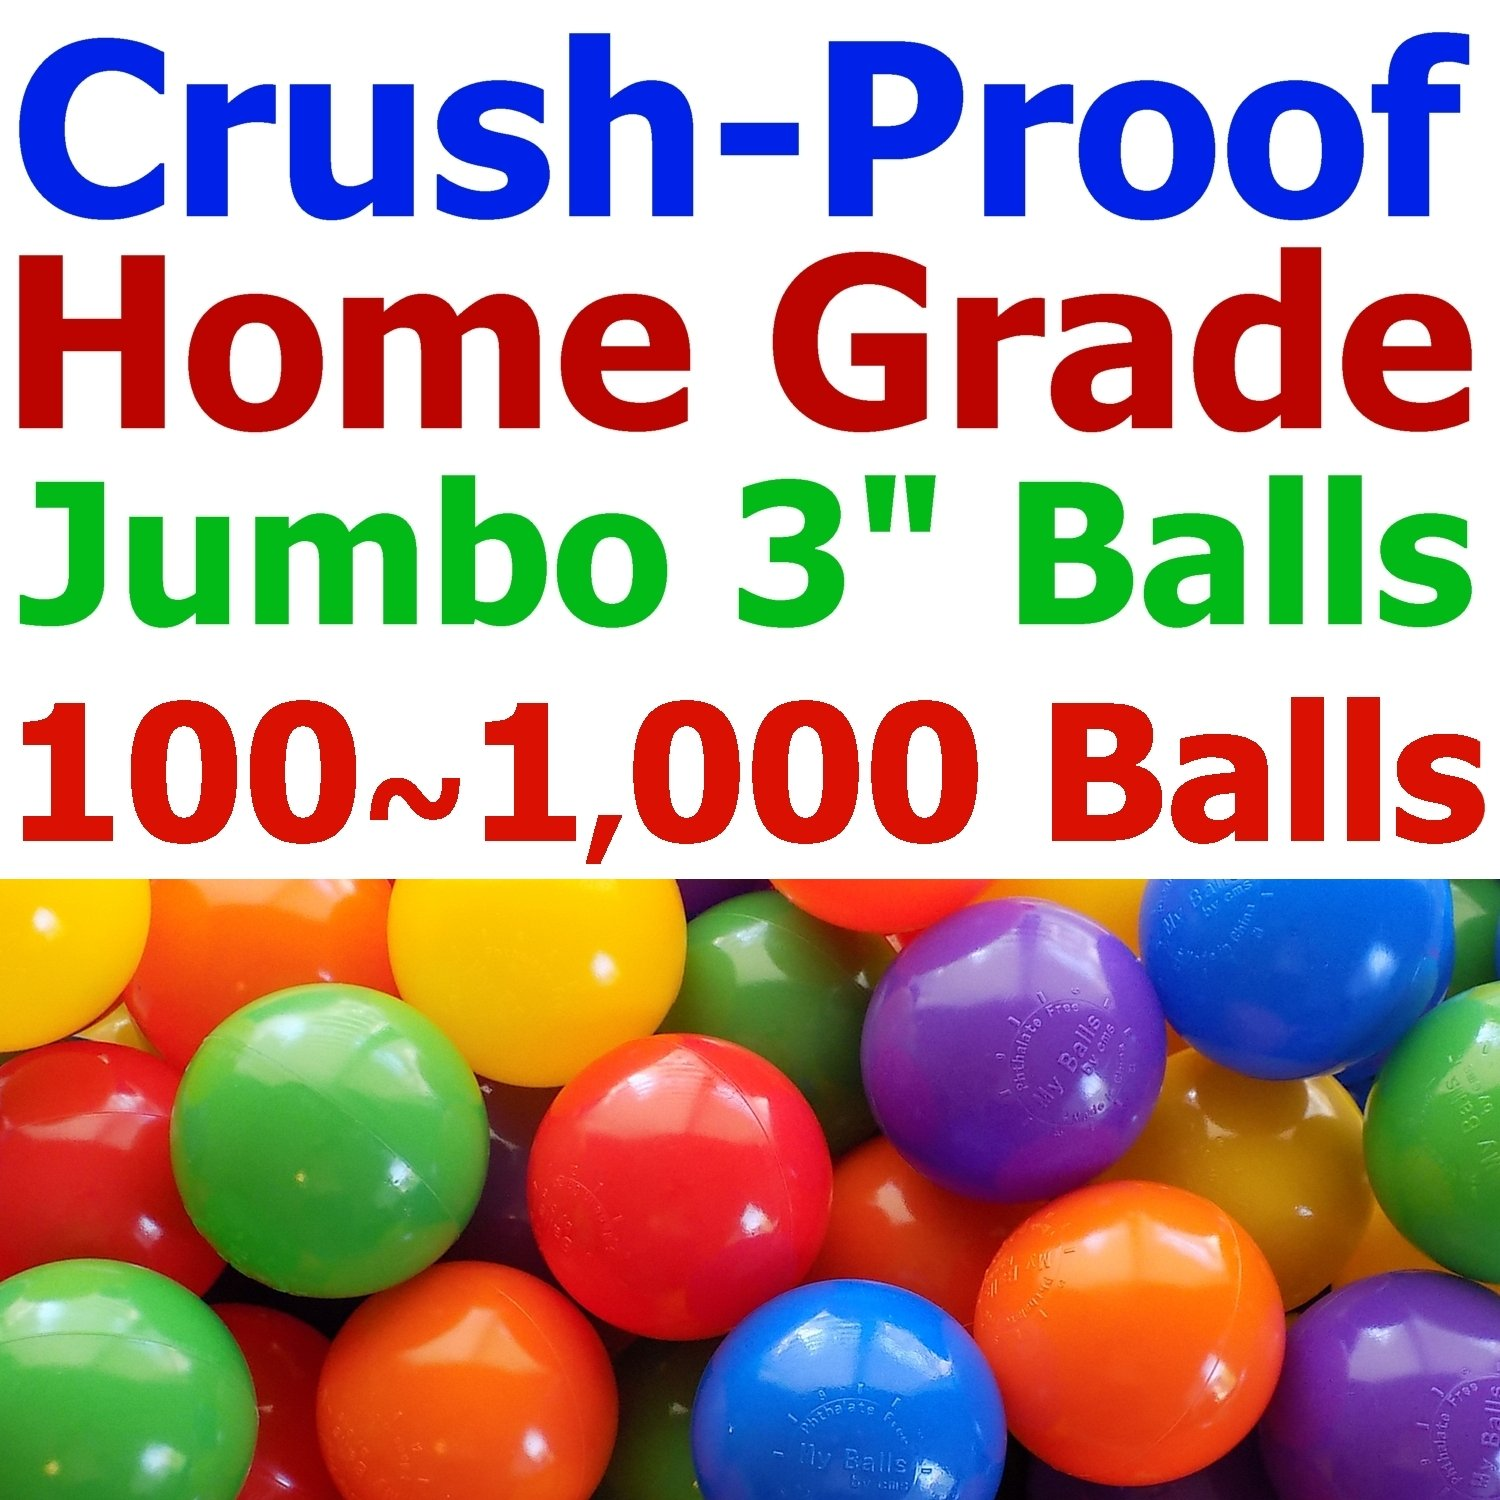 My Balls Pack of 200 Jumbo 3'' Crush-Proof Ball Pit Balls - 5 Bright Colors, Phthalate Free, BPA Free, PVC Free, Non-Toxic, Non-Recycled Plastic (Standard Home Grade, Pack of 200) by My Balls